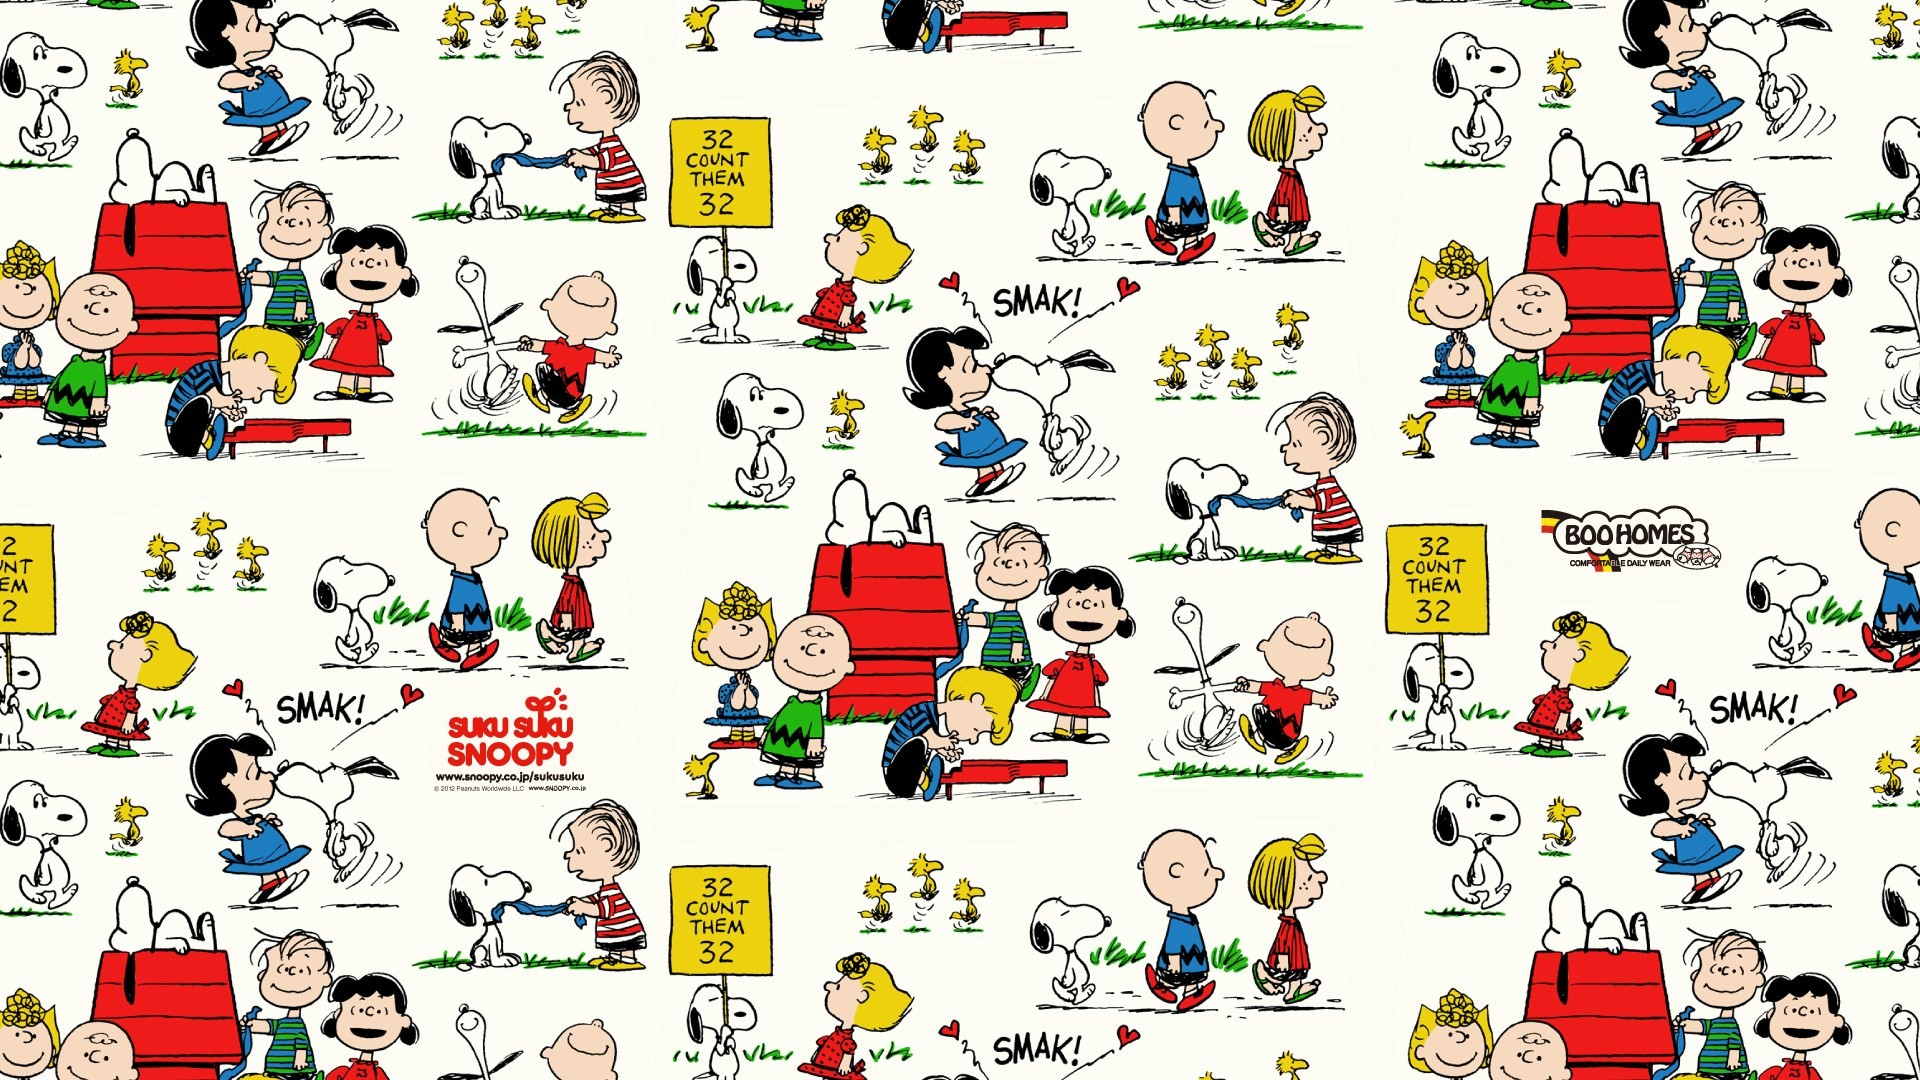 Snoopy desktop wallpaper 45 images - Snoopy wallpaper for walls ...